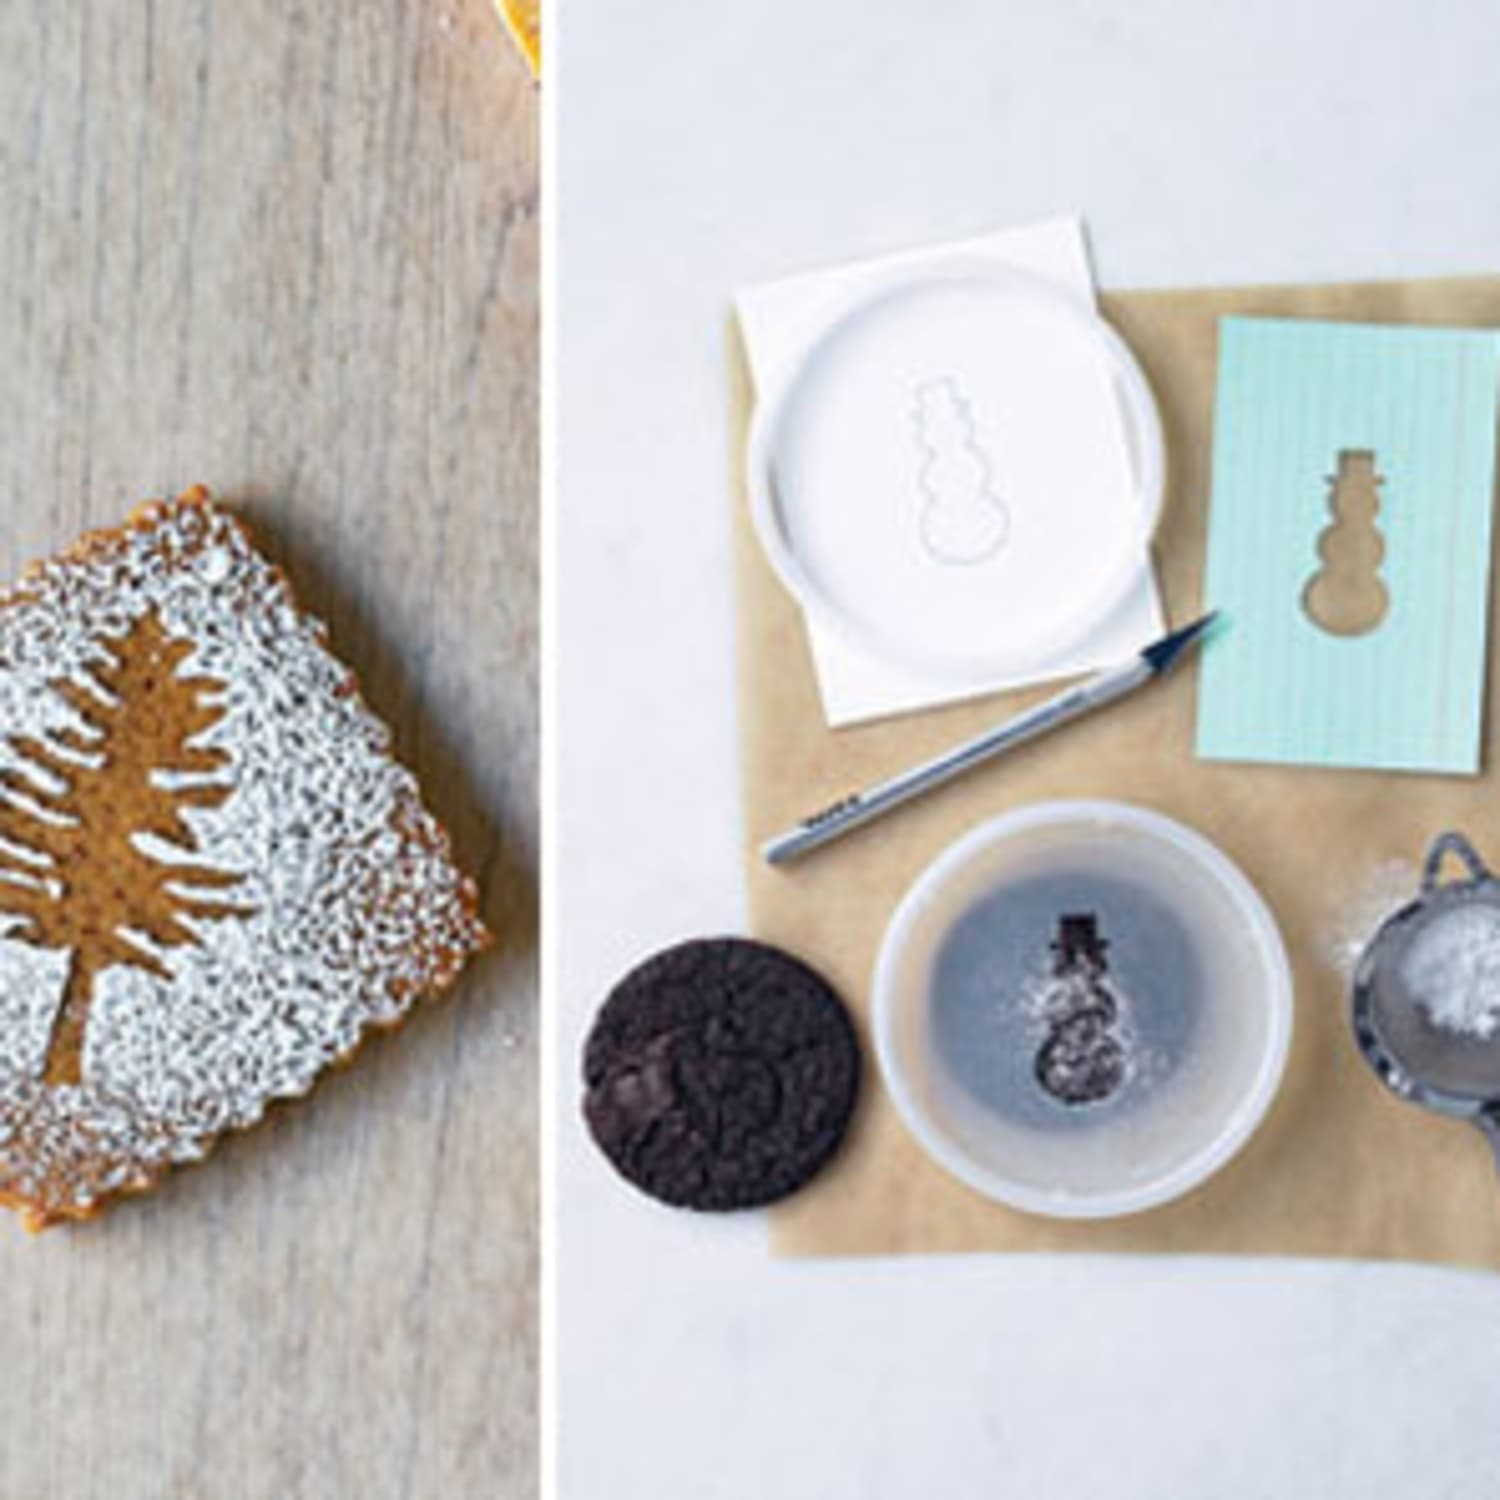 Holiday Cookie Stencils To Download For Free | Kitchn - Free Printable Cookie Stencils